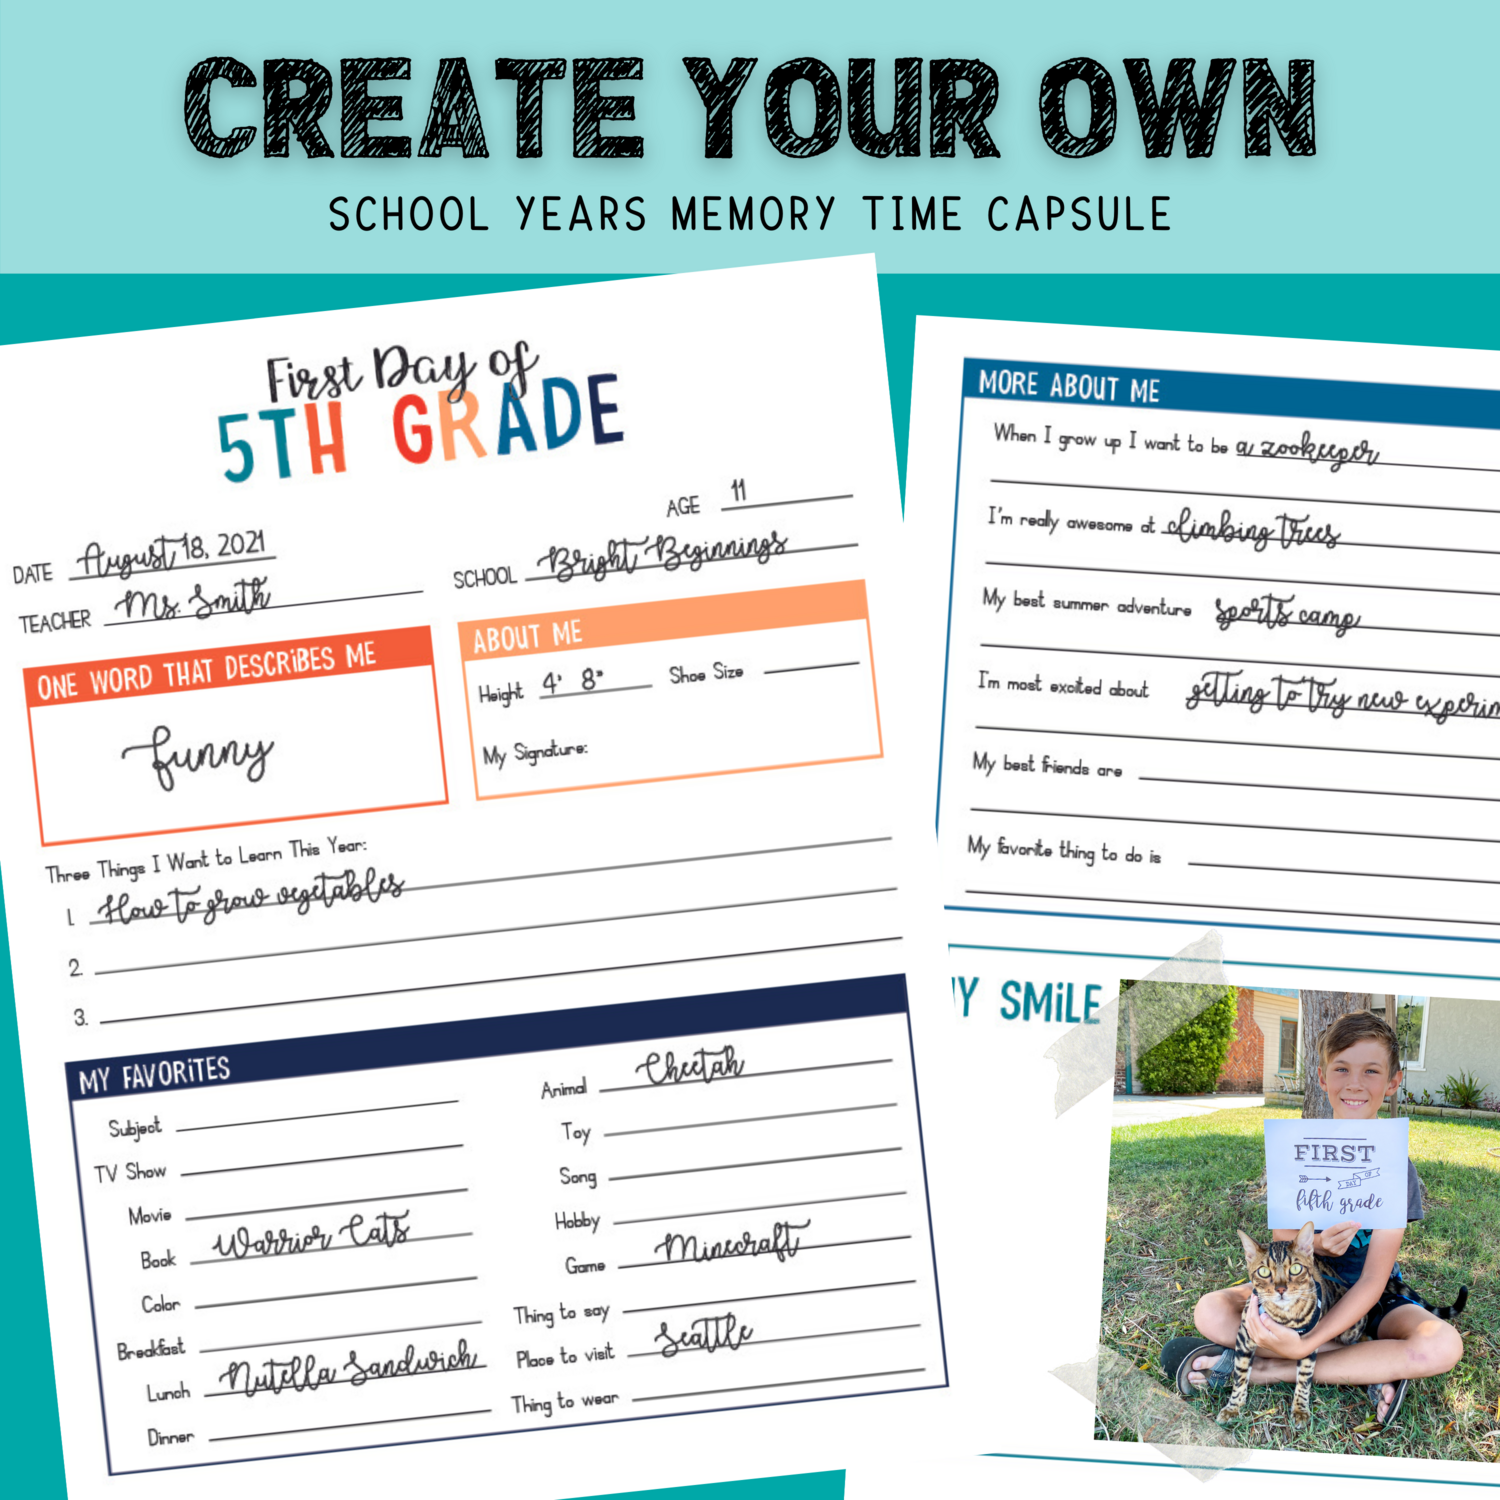 First Day of School / Back to School Interview Questionnaire Time Capsule Bundle